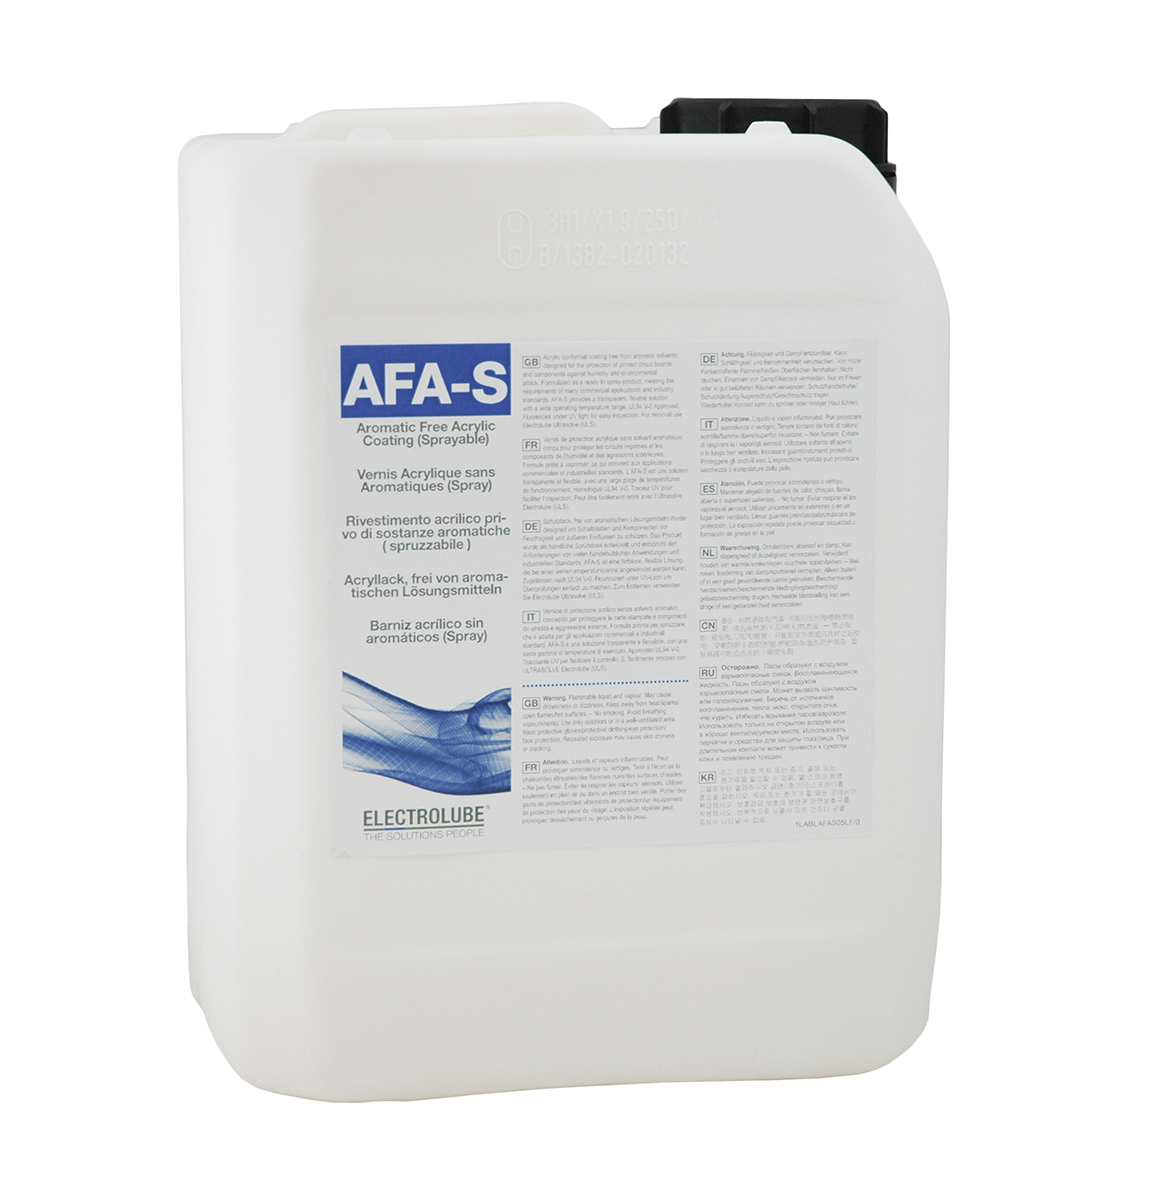 AFAS - Aromatic-Free Acrylic Coating (Spray Grade)